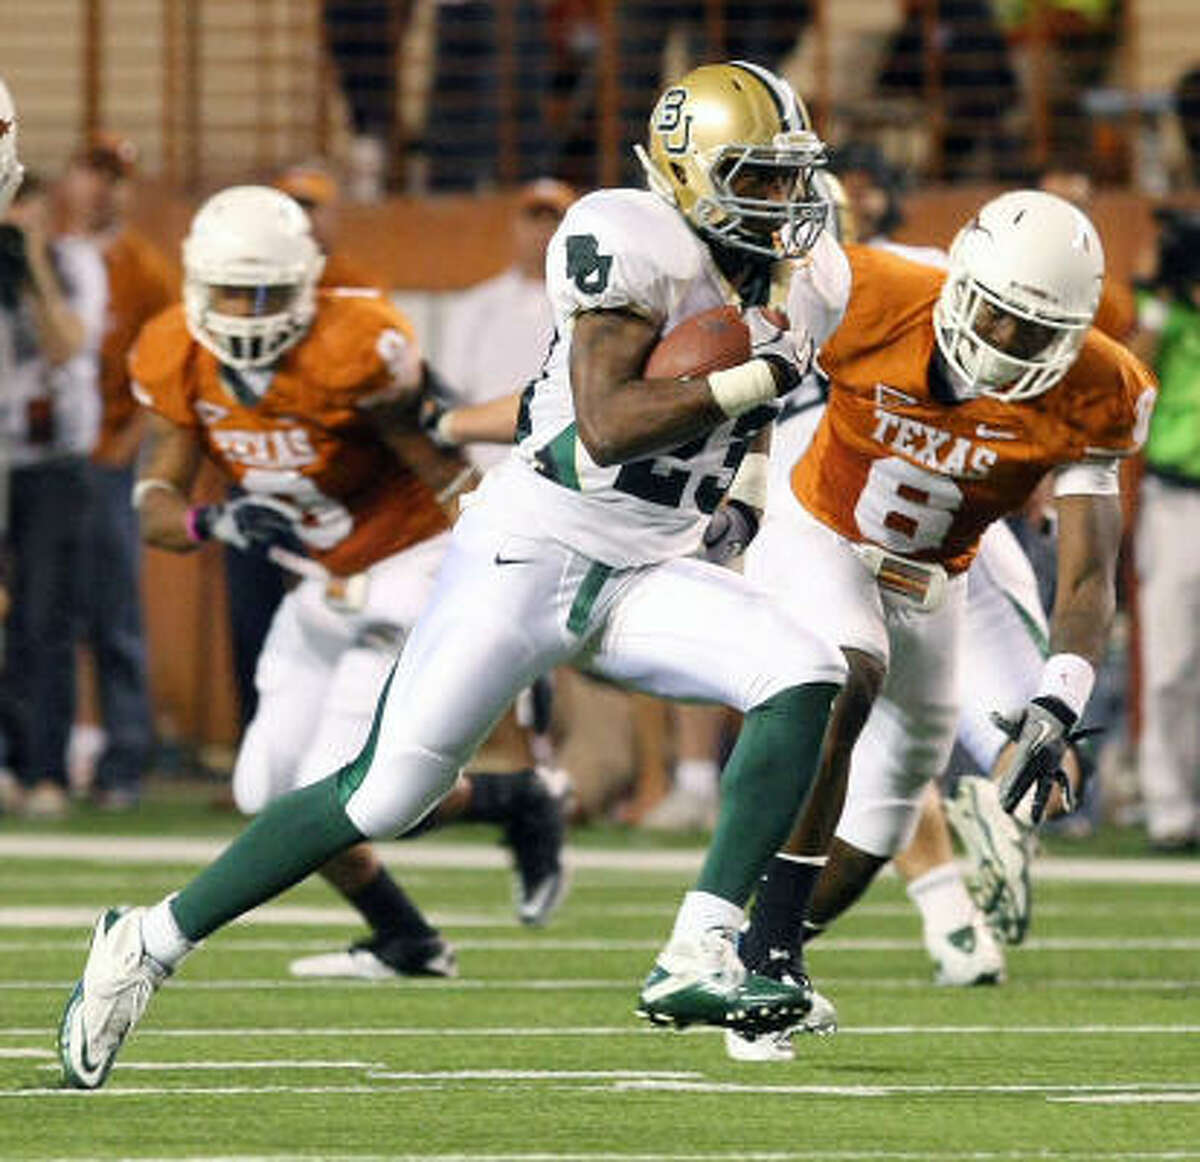 Oct. 30: Baylor 30, Texas 22 Baylor running back Jay Finley runs past Texas safety Christian Scott, right, for a second-half touchdown.